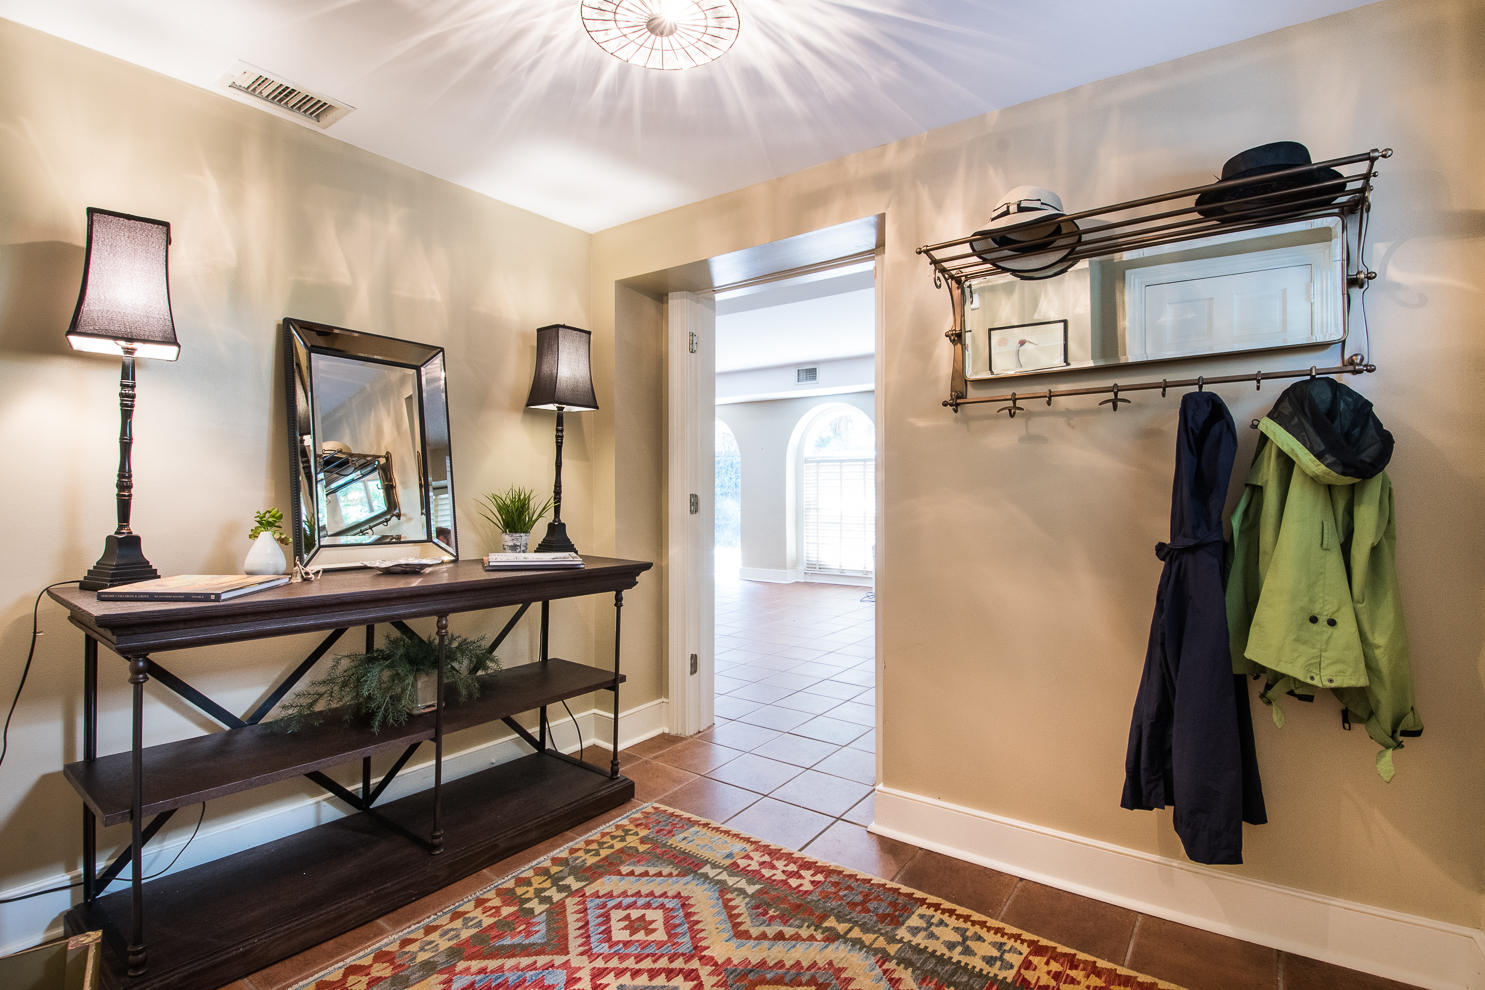 South of Broad Homes For Sale - 1 Prices, Charleston, SC - 43